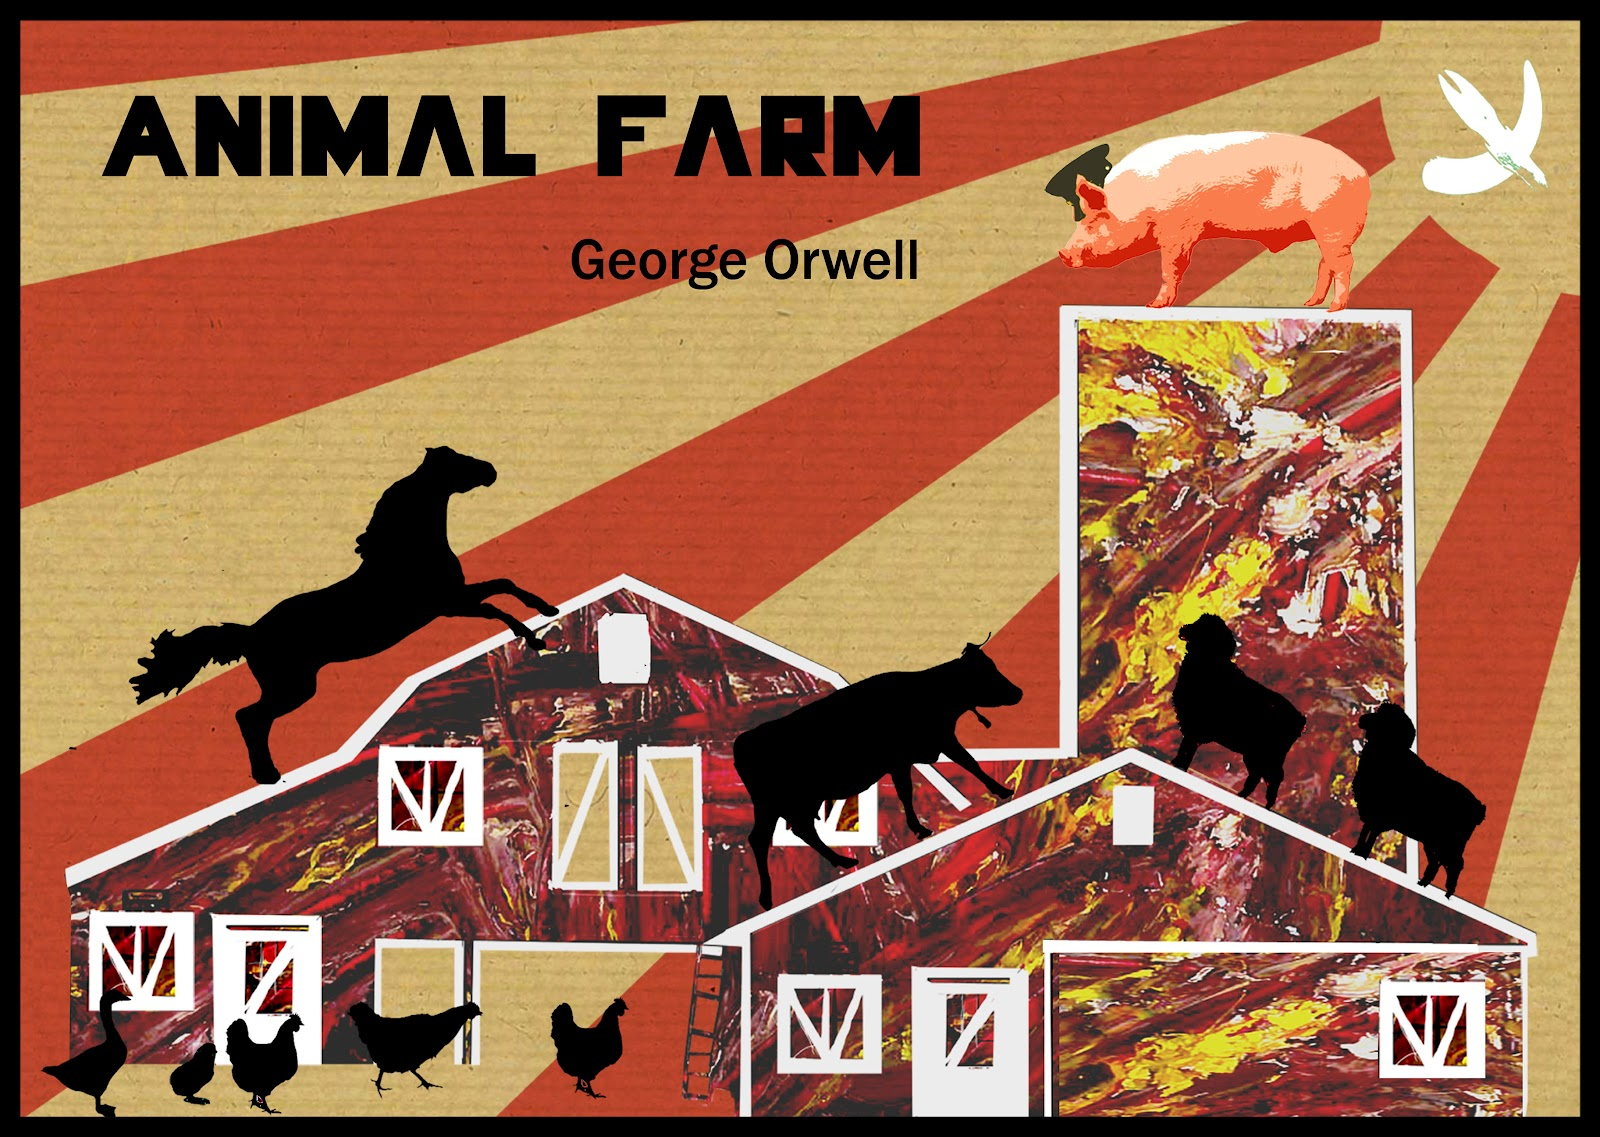 Essays On Animal Farm